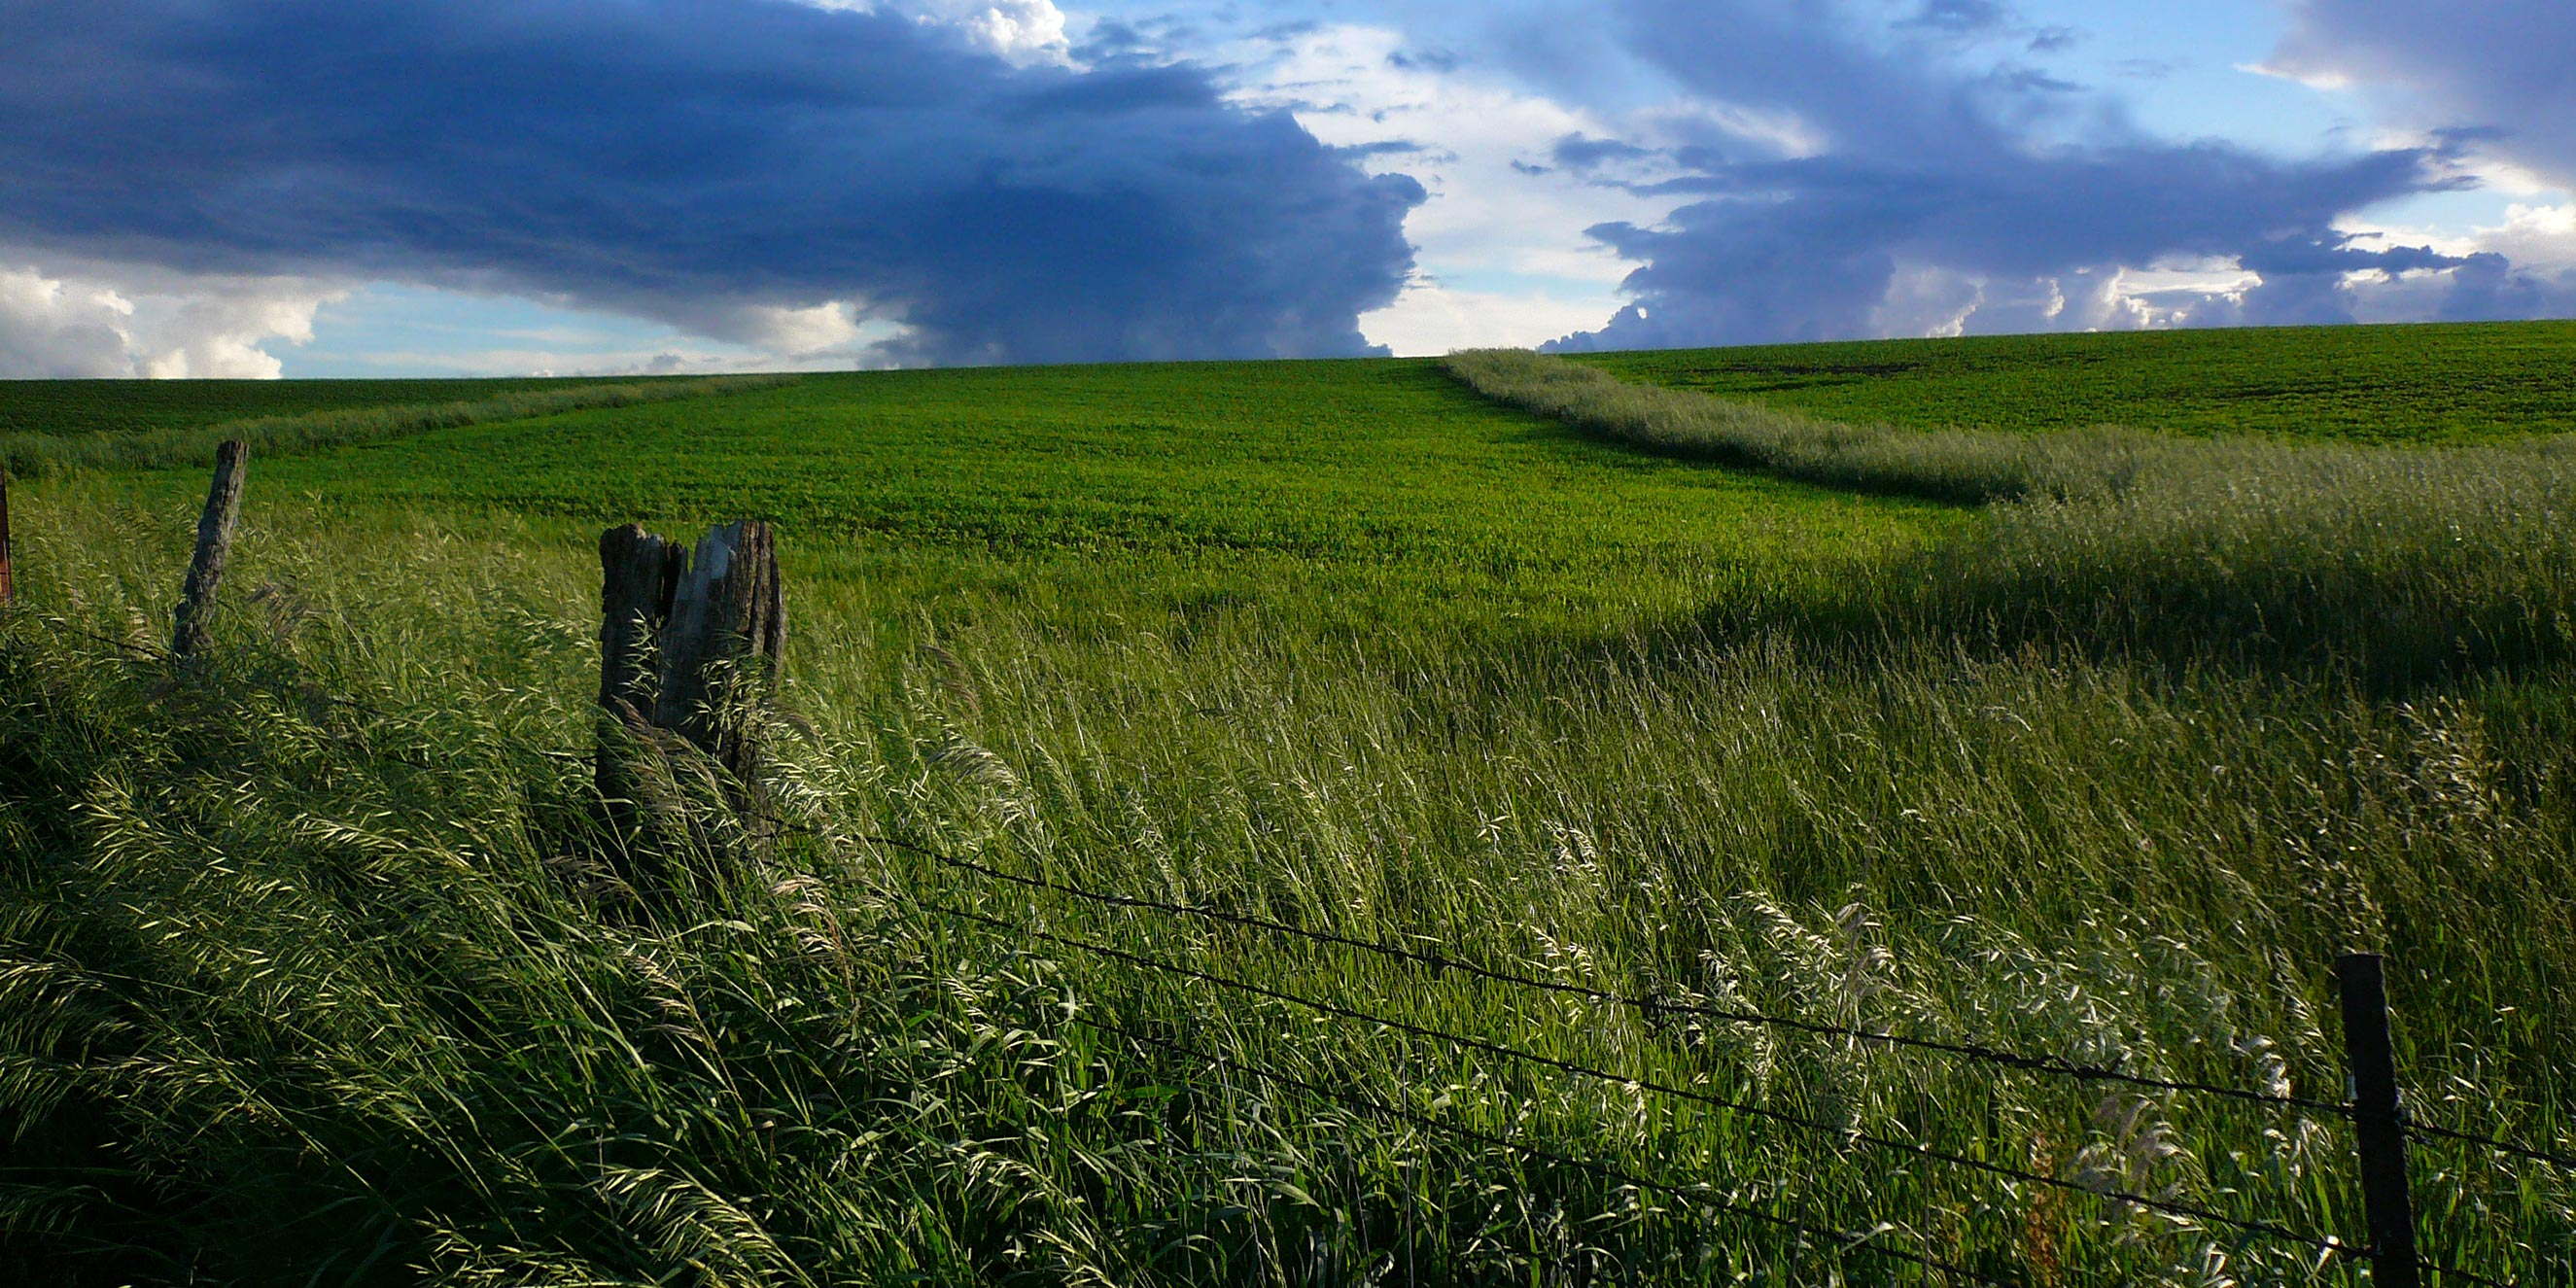 Tall grasses grow along a barbed wire fence line where a prairie and a farm border each other.